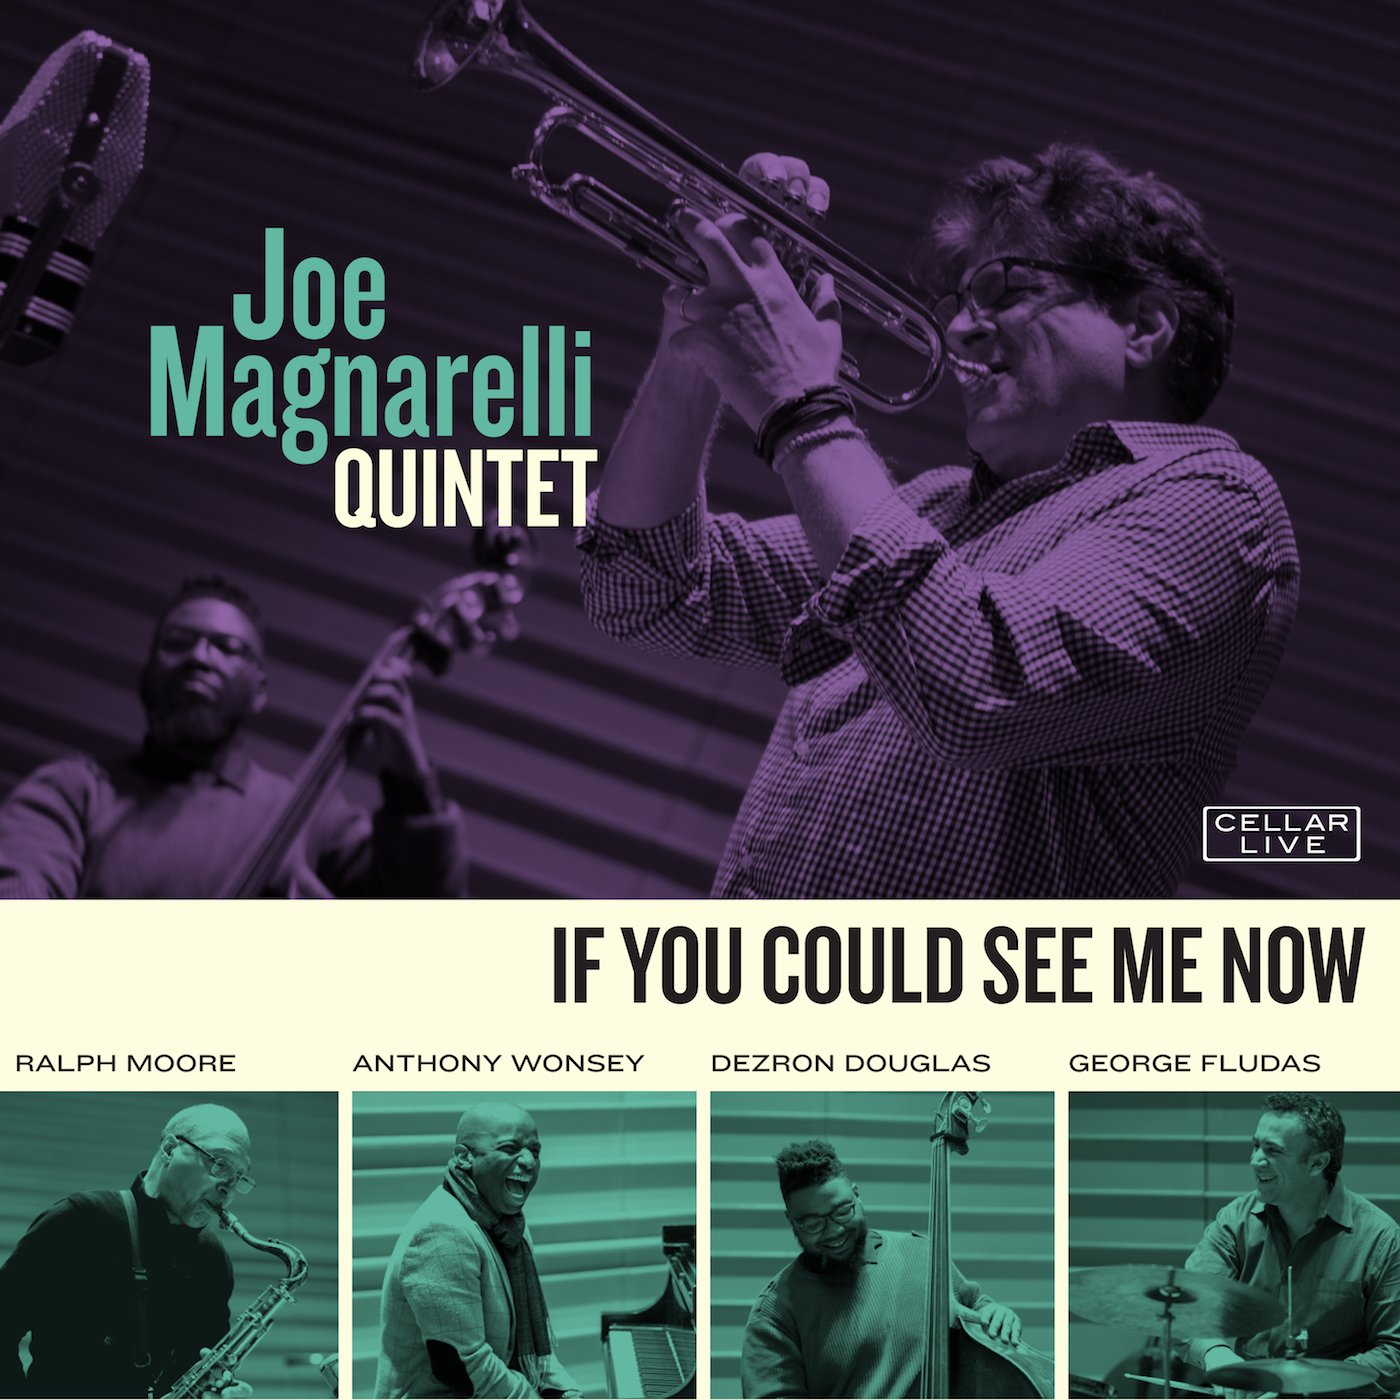 JOE MAGNIARELLI: IF YOU COULD SEE ME NOW